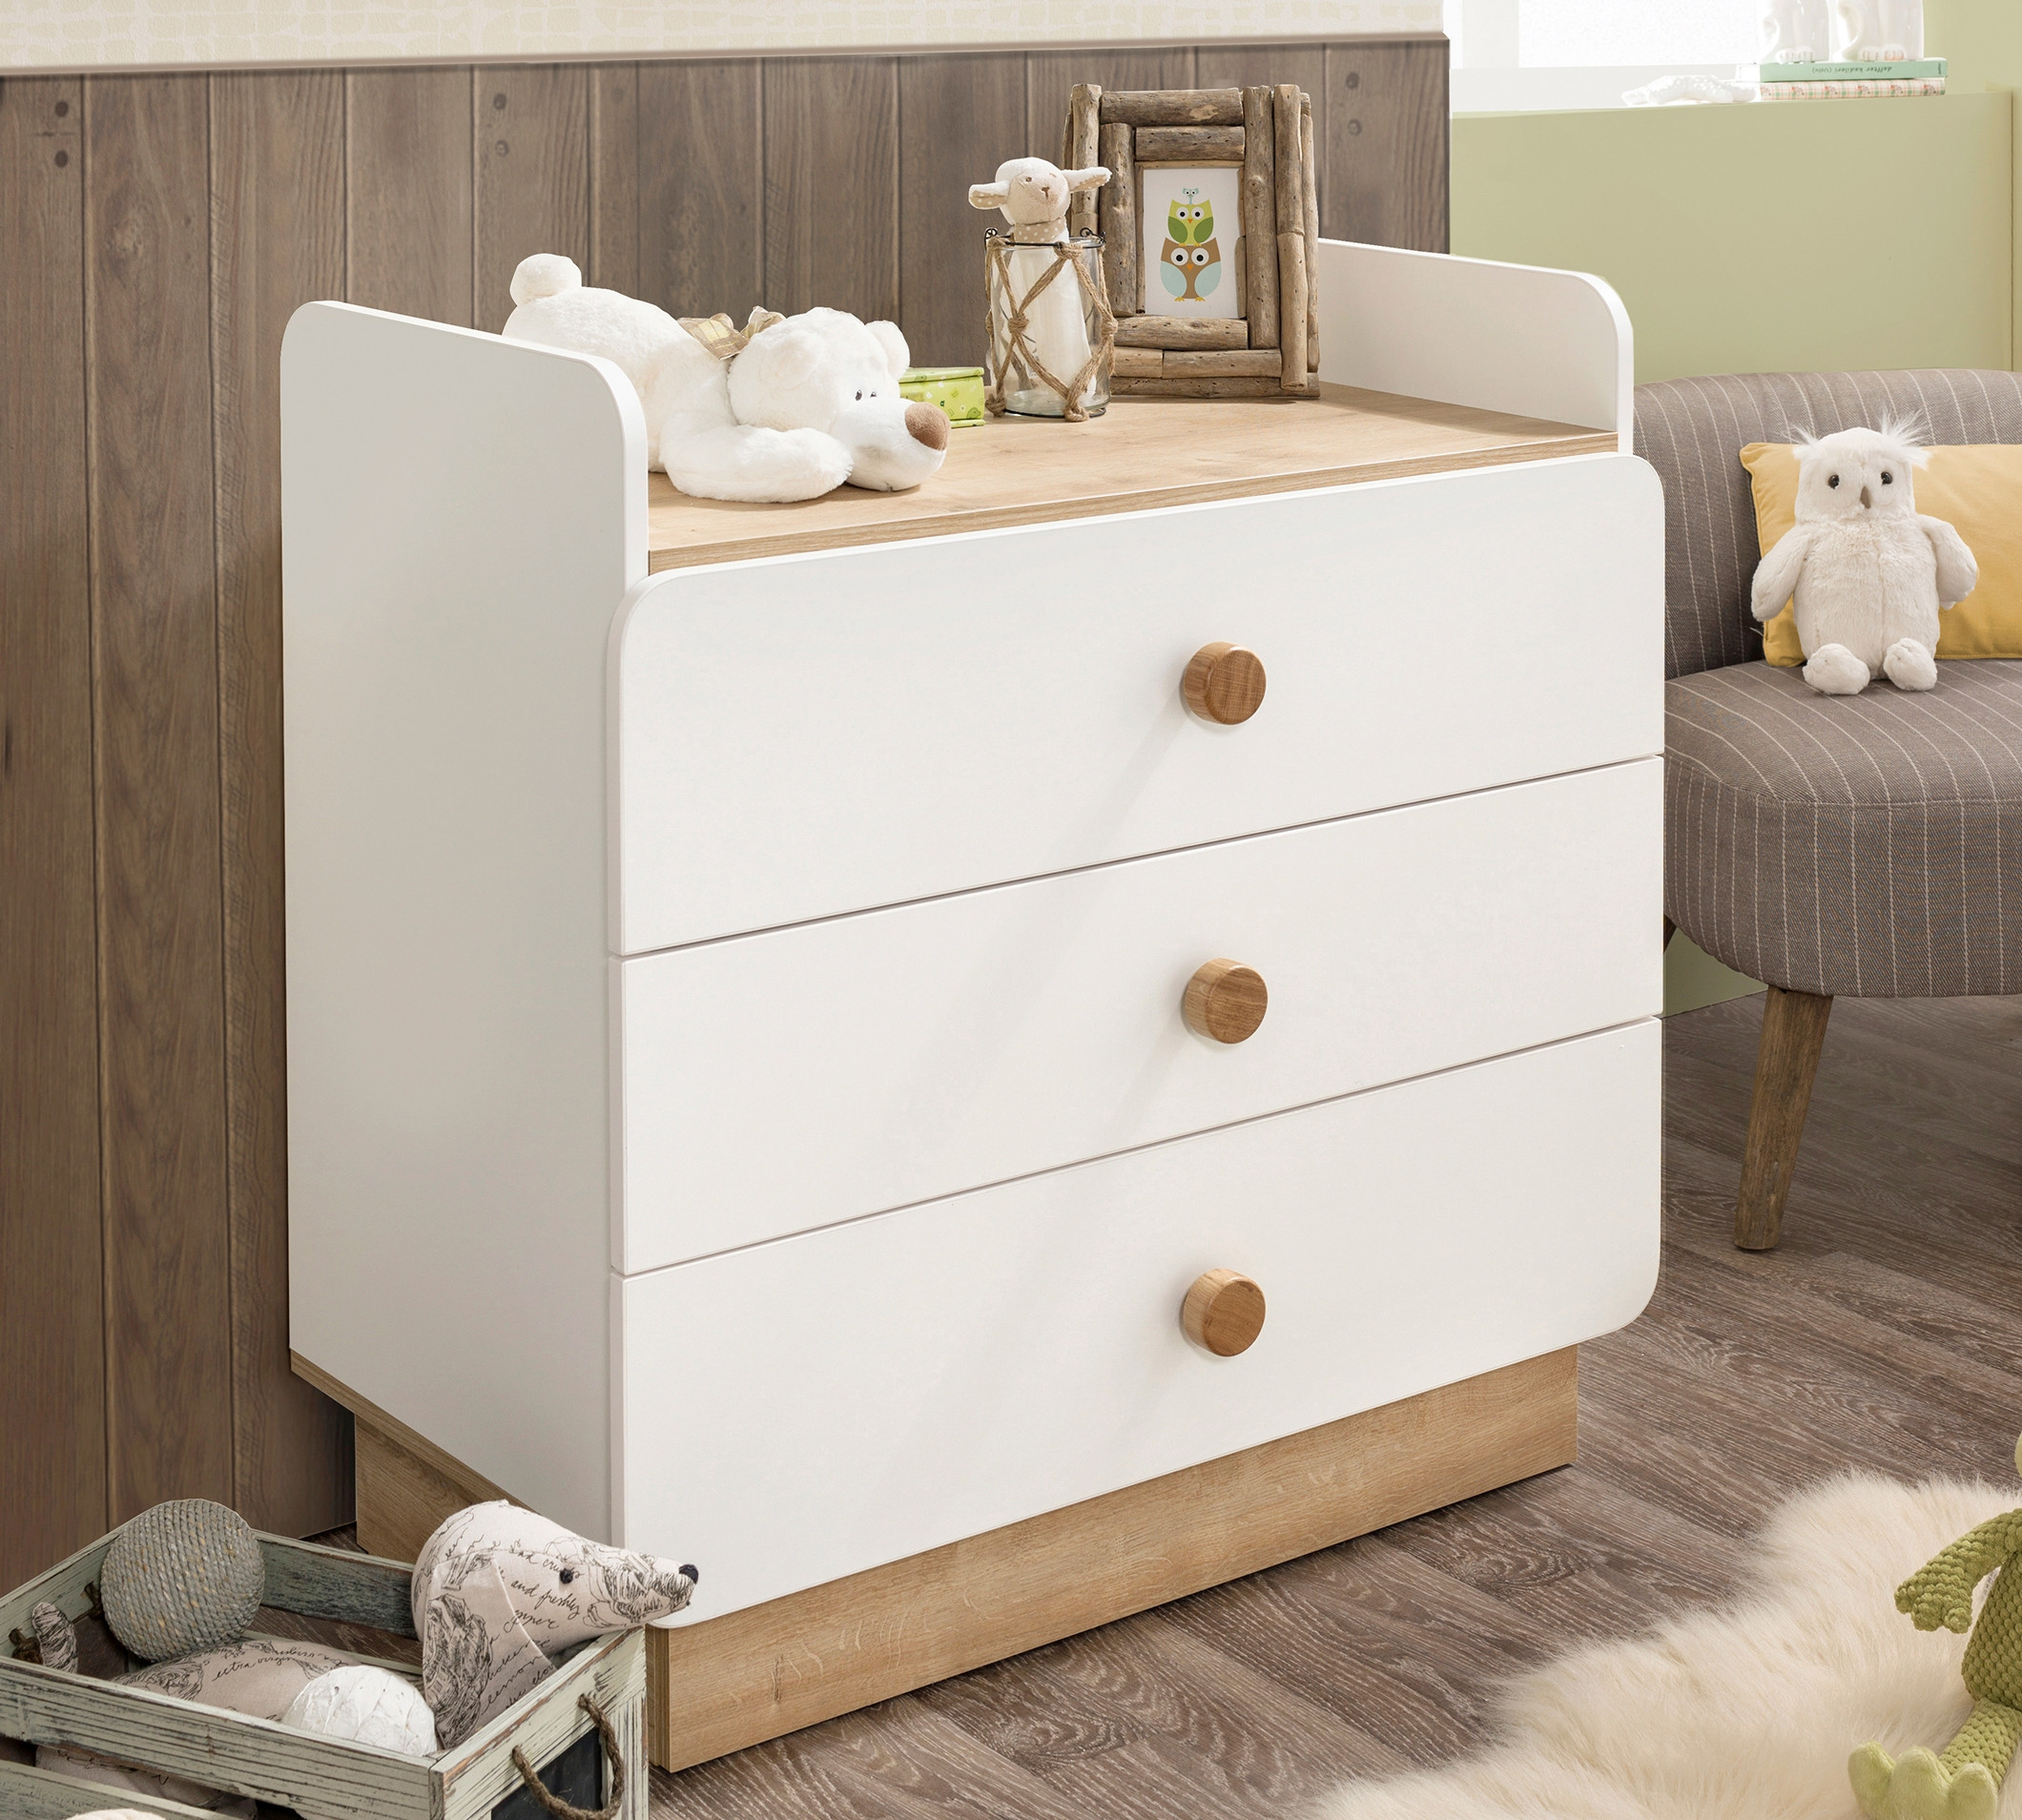 How to Choose Between a Single Drawer Dresser and a Four Drawer Dresser